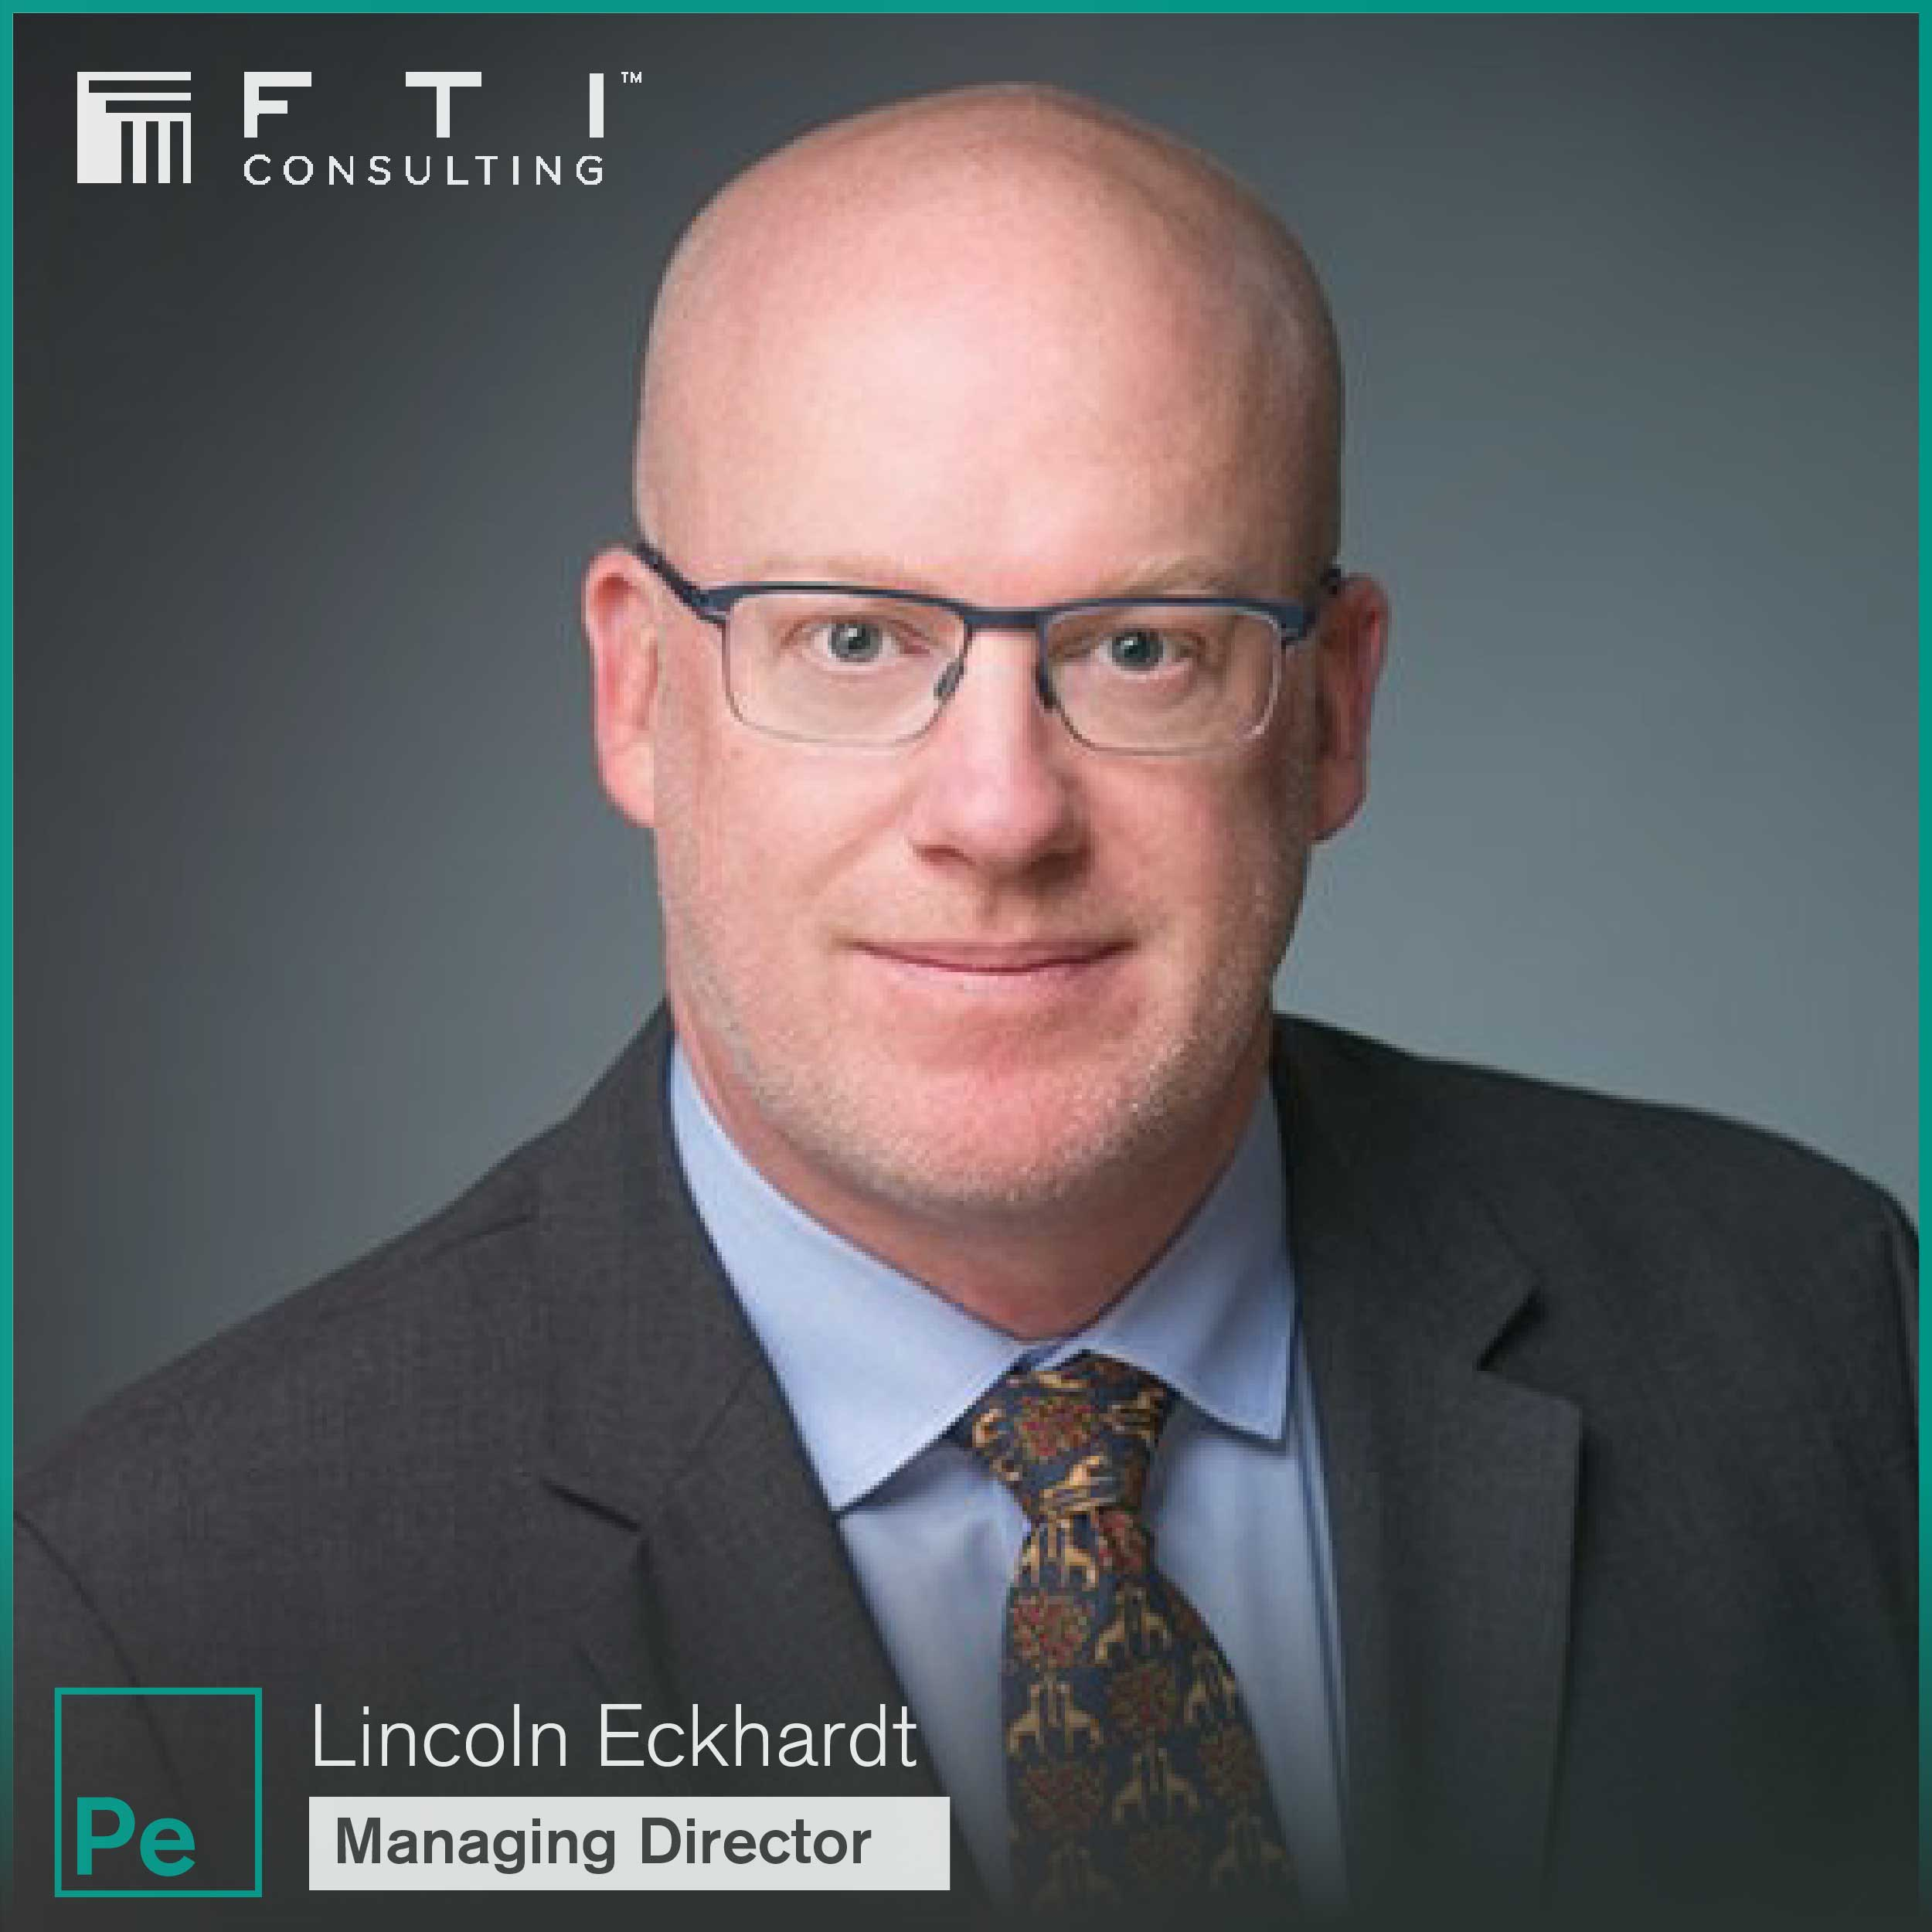 Lincoln Eckhardt, Managing Director of FTI Consulting, works to provide accurate valuations of cannabis companies during mergers, acquisitions, and legal disputes. Lincoln gives tips and tricks on all things cannabis business valuation, including when and where to invest, how to scale your business, and when you should plan your exit.